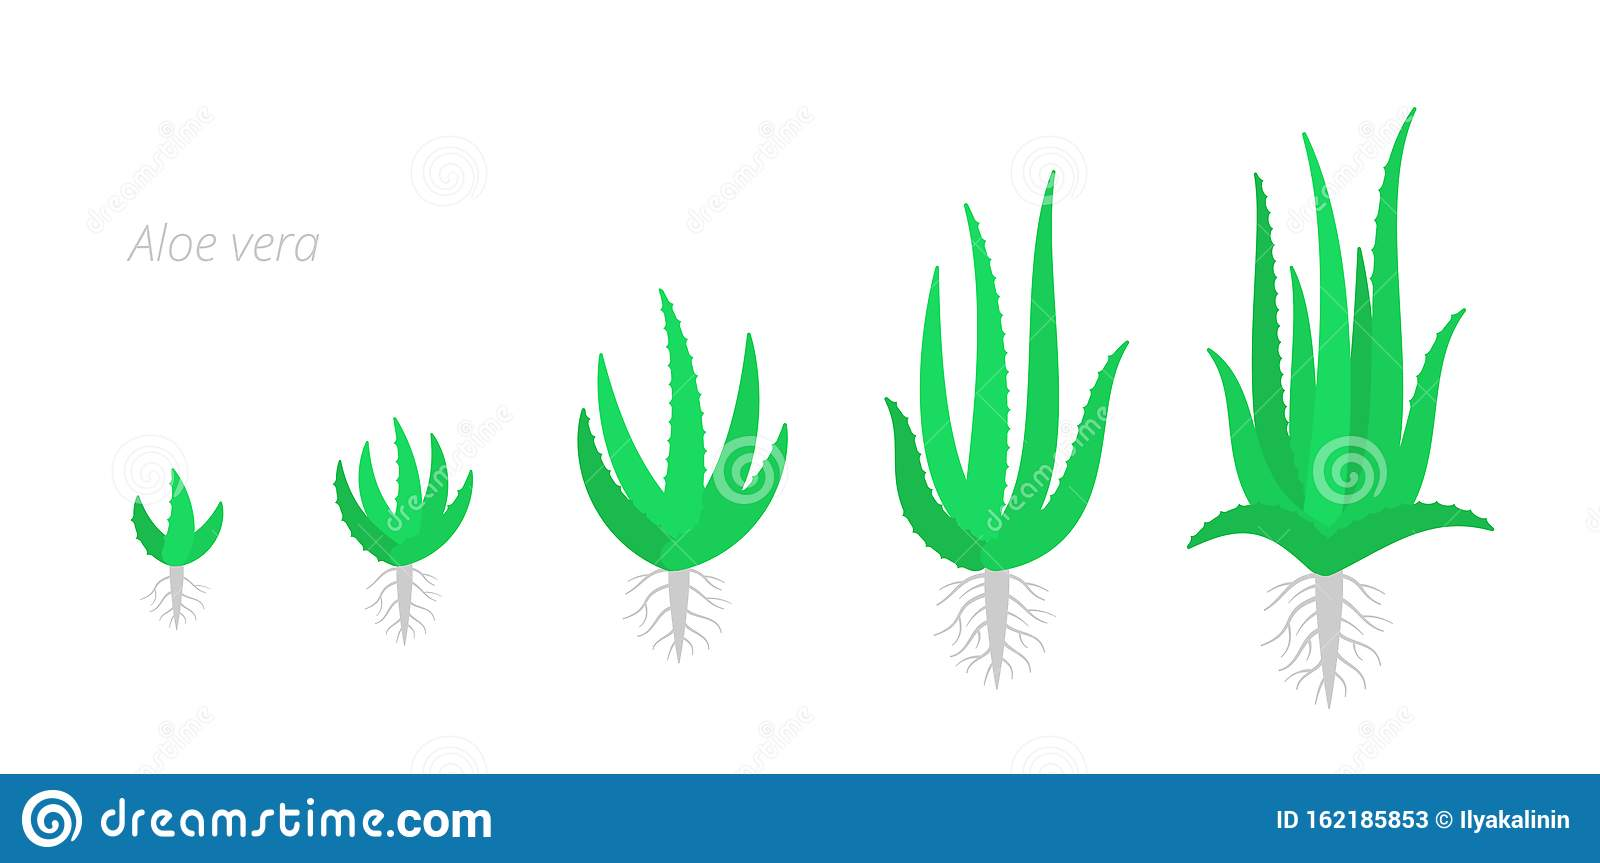 Aloe Vera Is A Succulent Plant The Life Cycle Of Cactus Aloe Growth Stages Phases Set Ripening Growing Period With The Roots Stock Illustration Illustration Of Natural Isolated 162185853